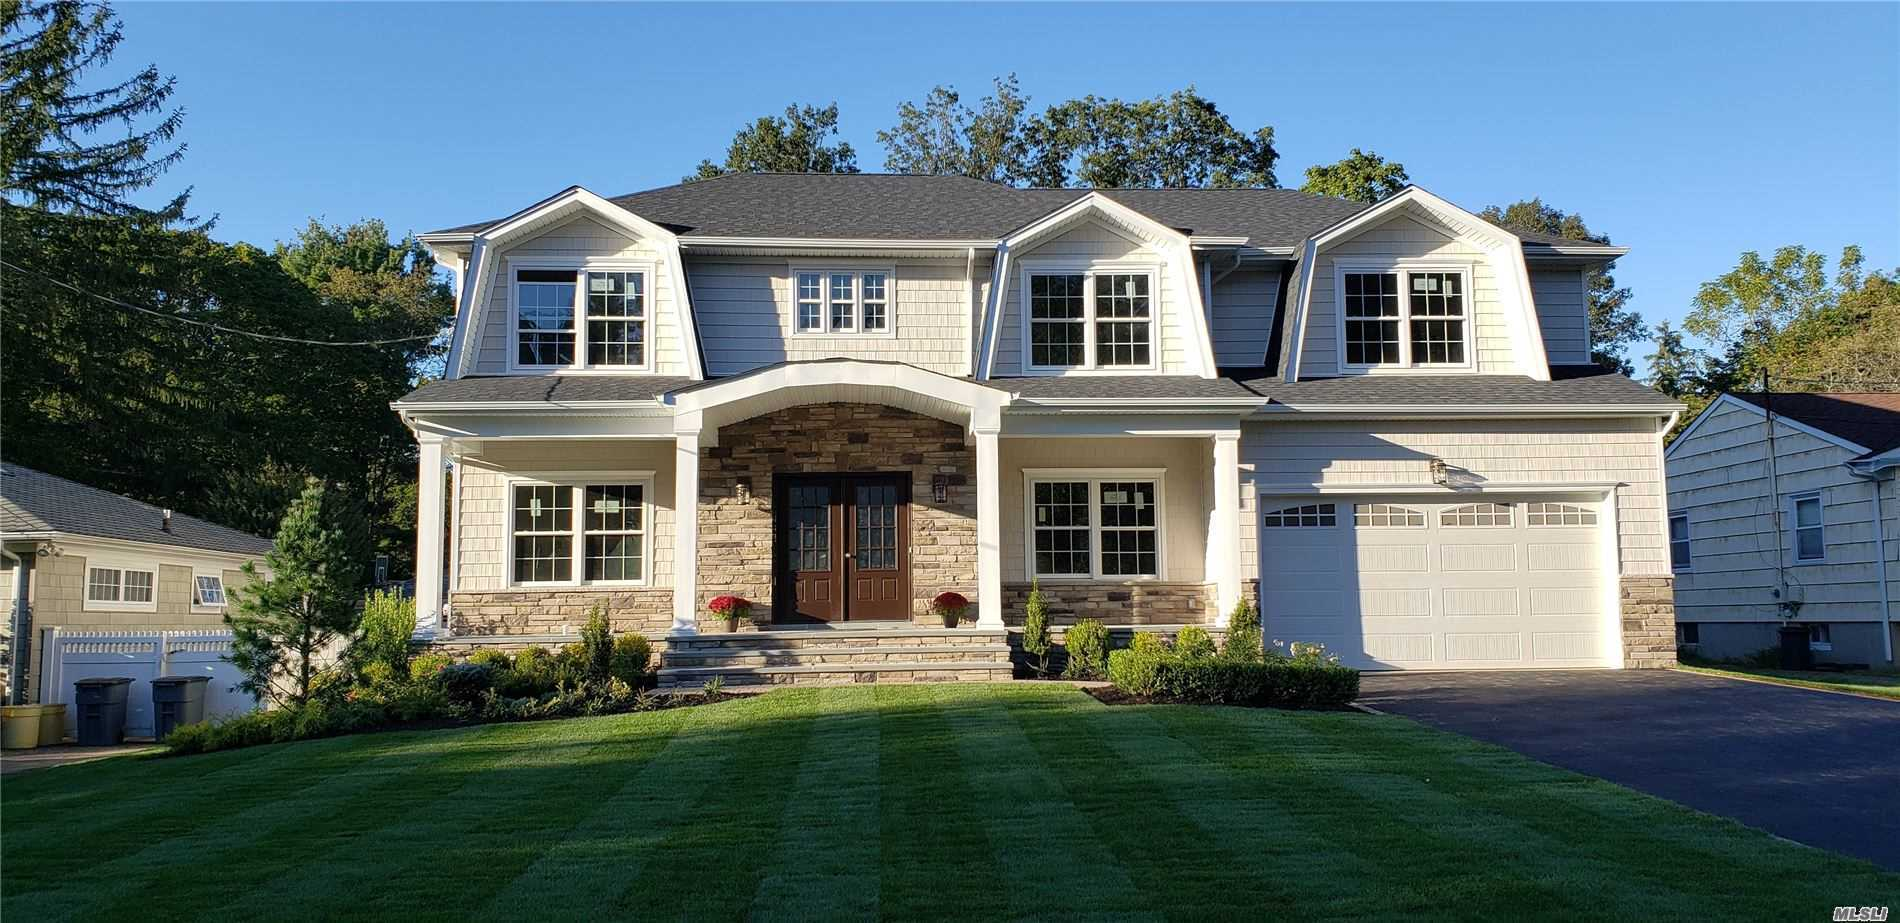 North Syosset Welcomes this flawless, Hamptons Style home! Designed with the most discerning buyer in mind! Unparalleled attention to detail, Superior craftsmanship & finishes. This floor plan is sure to impress! Master ensuite on 1st floor as well as Master ensuite on the 2nd Floor, Breakfast nook in Gourmet EIK, Vaulted Entry Foyer, FLR, FDR, Family room w/Fireplace and built-in cabinetry, Walk-in Pantry, Laundry/Mudroom, To Be Built! Photos not exact as actual home/plans subject to change.